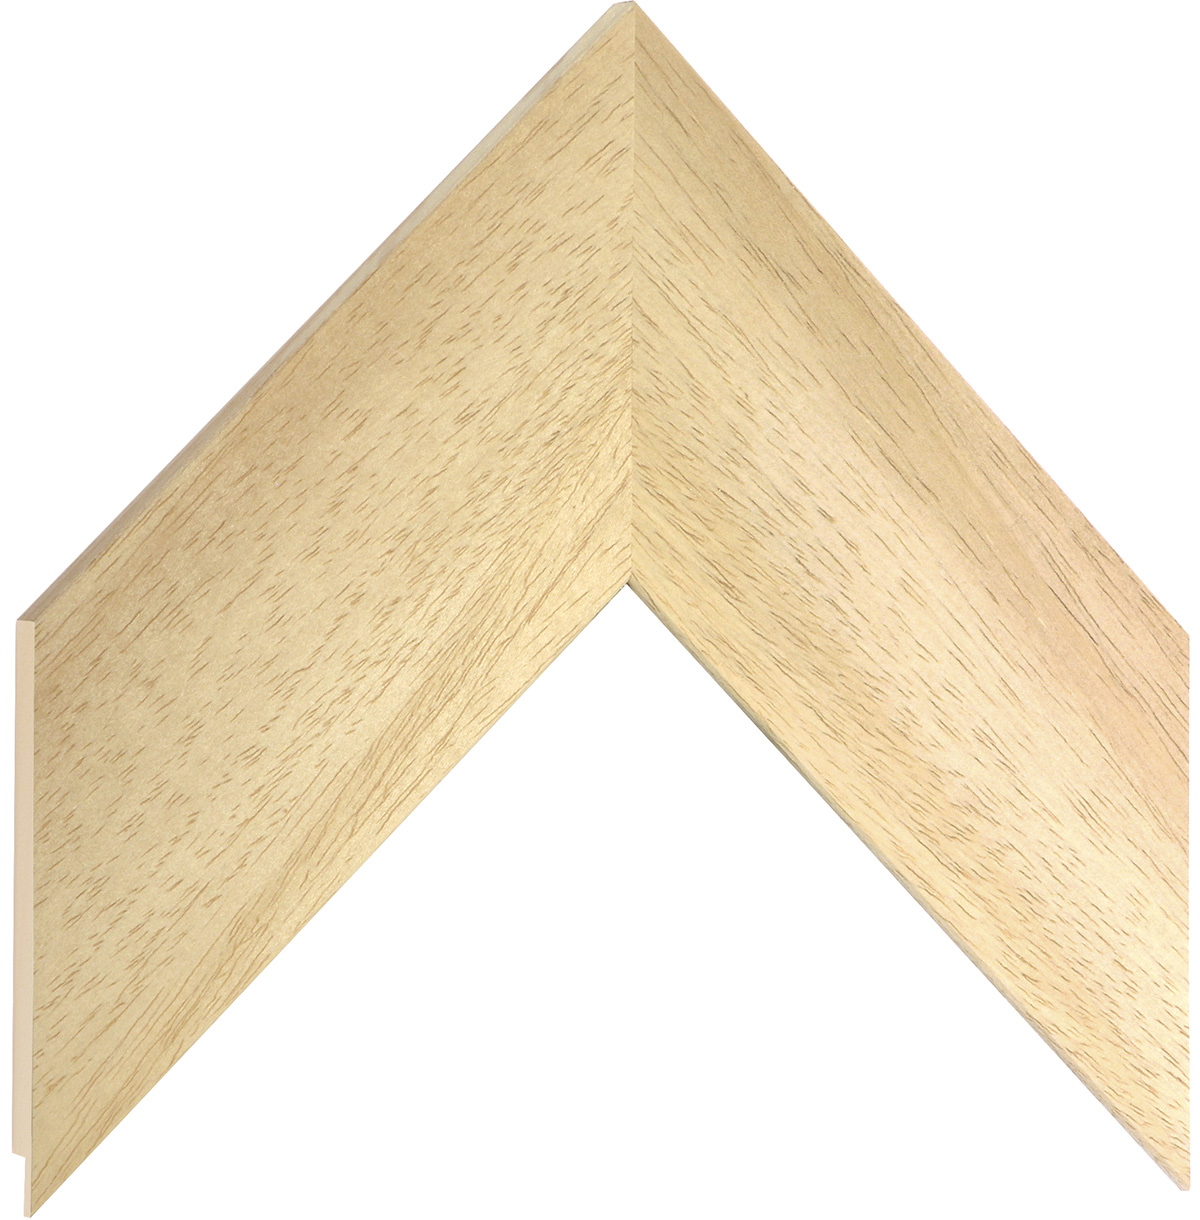 Moulding ayous, width 70mm, height 10mm, bare timber